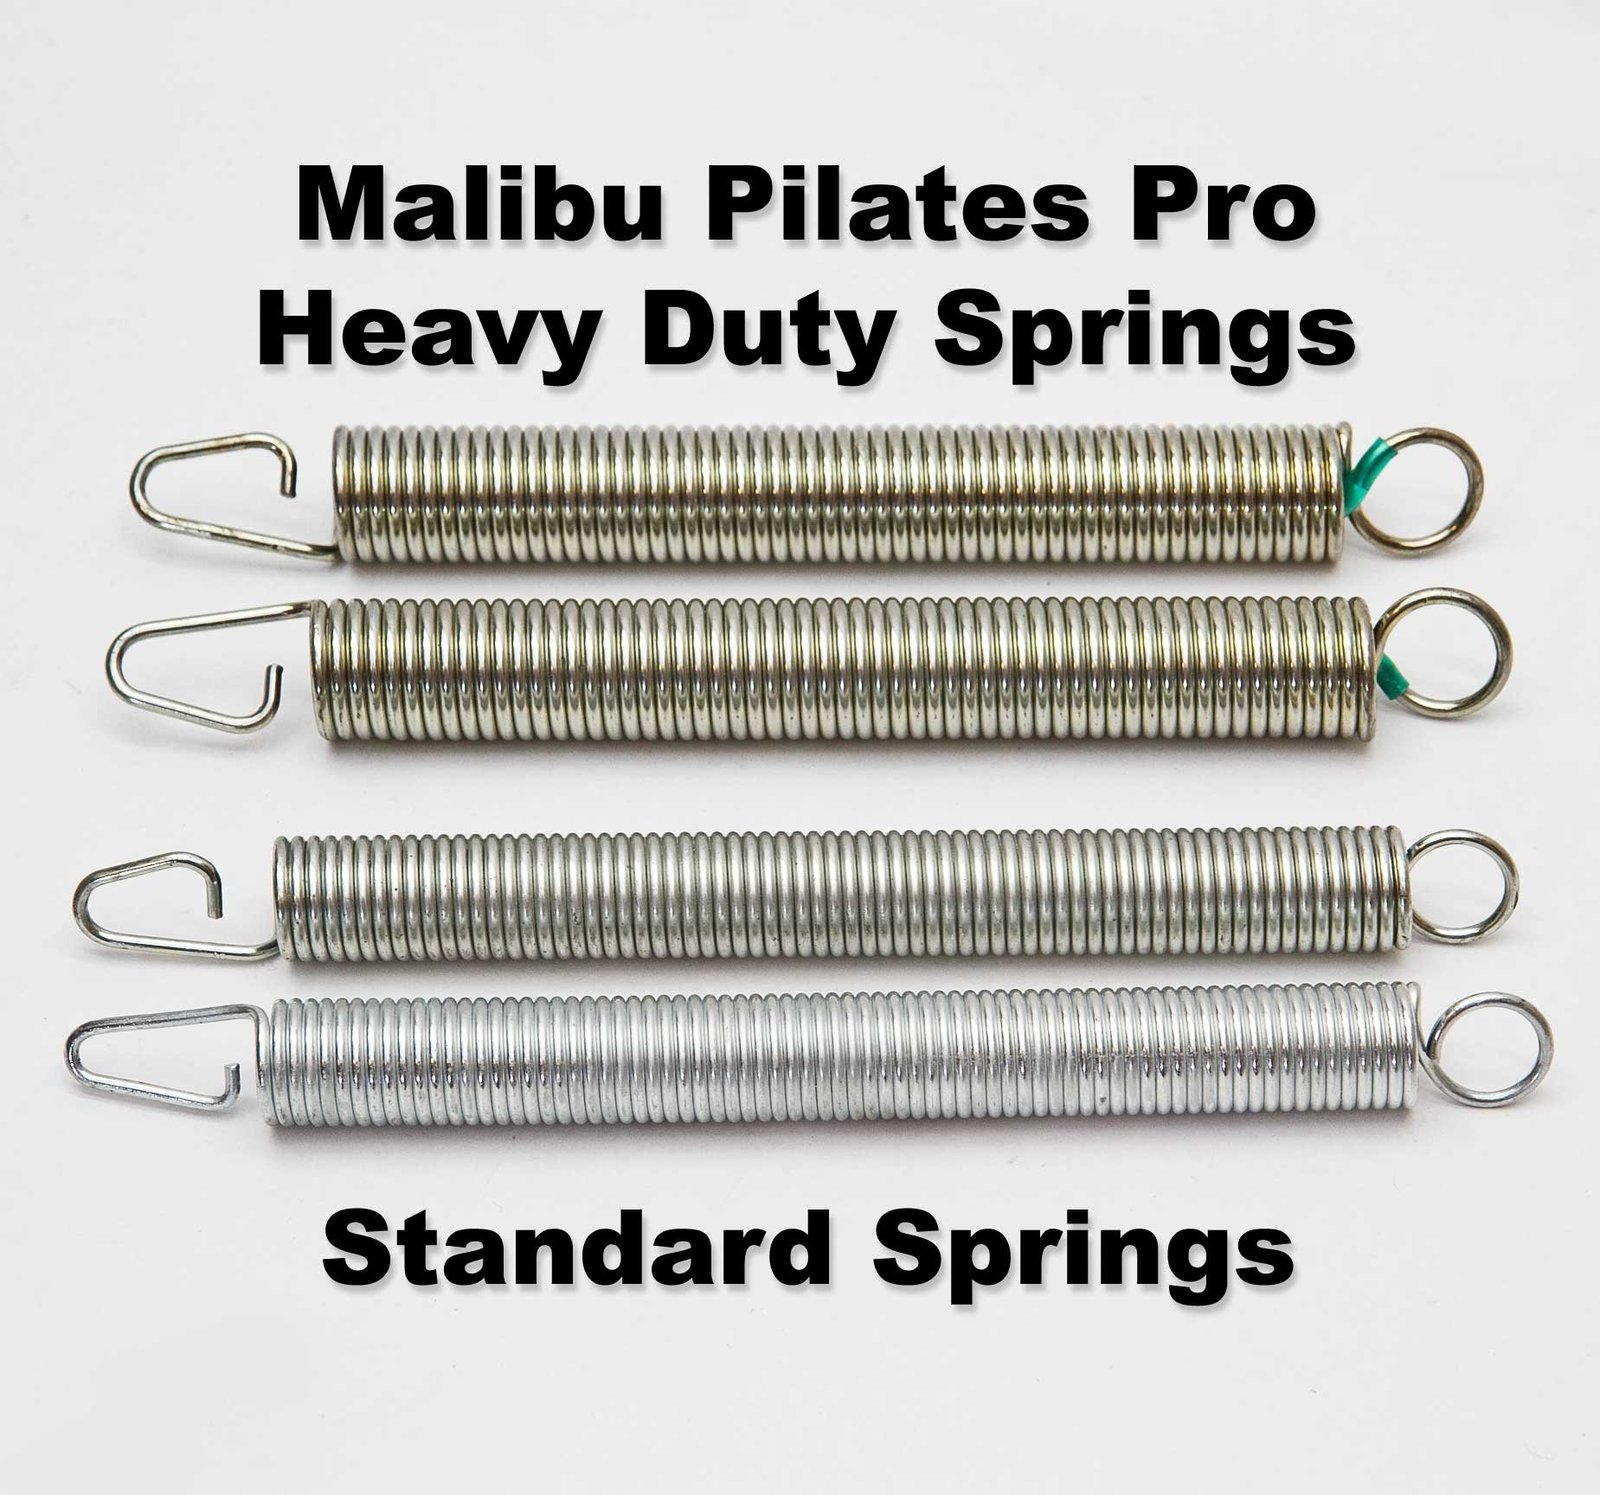 malibu pilates chair double blinds for hunting pro accelerated results package